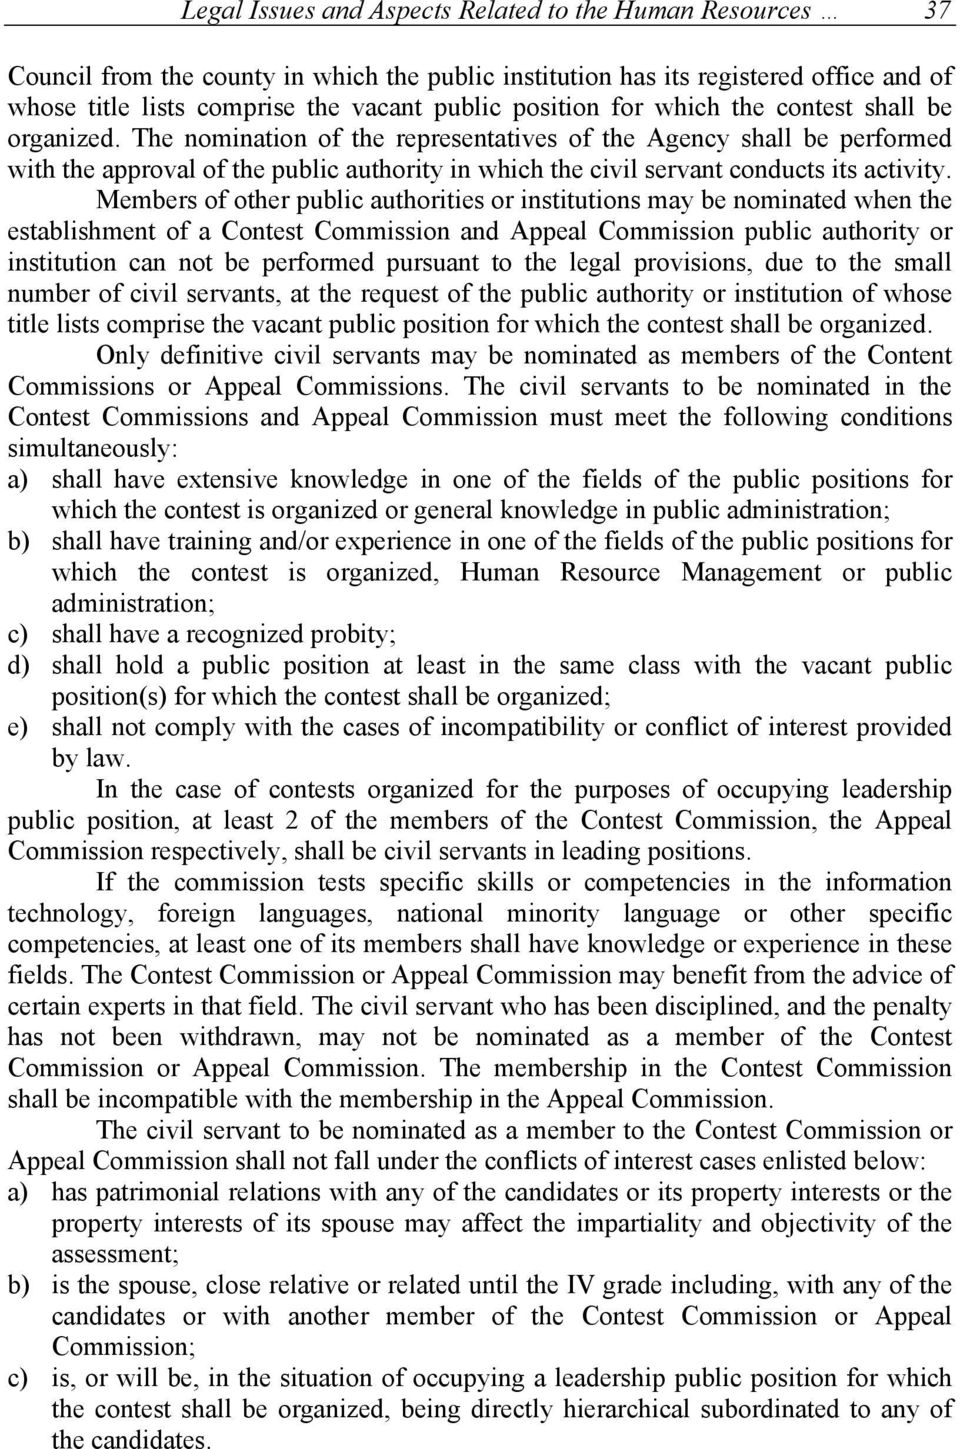 The nomination of the representatives of the Agency shall be performed with the approval of the public authority in which the civil servant conducts its activity.